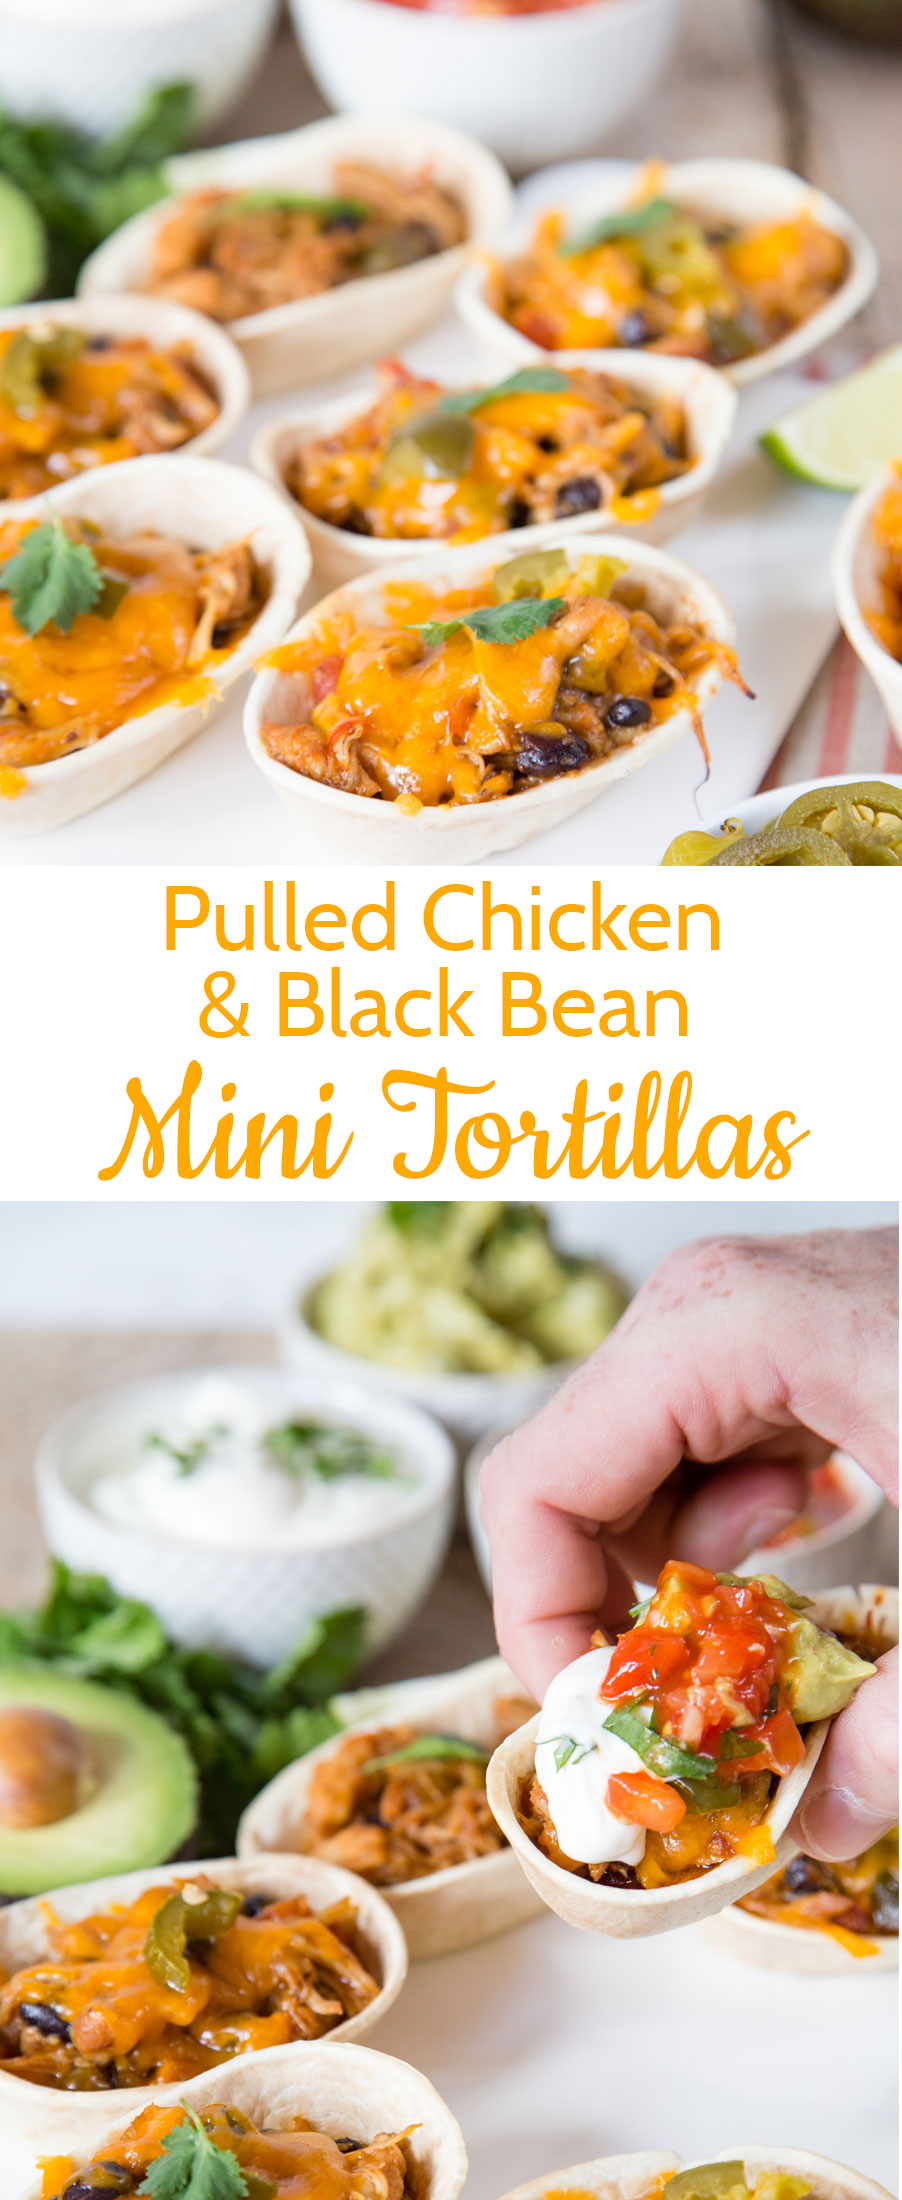 Mexican pulled chicken with black beans is an easy make ahead dish ideal for filling tortillas, or tacos